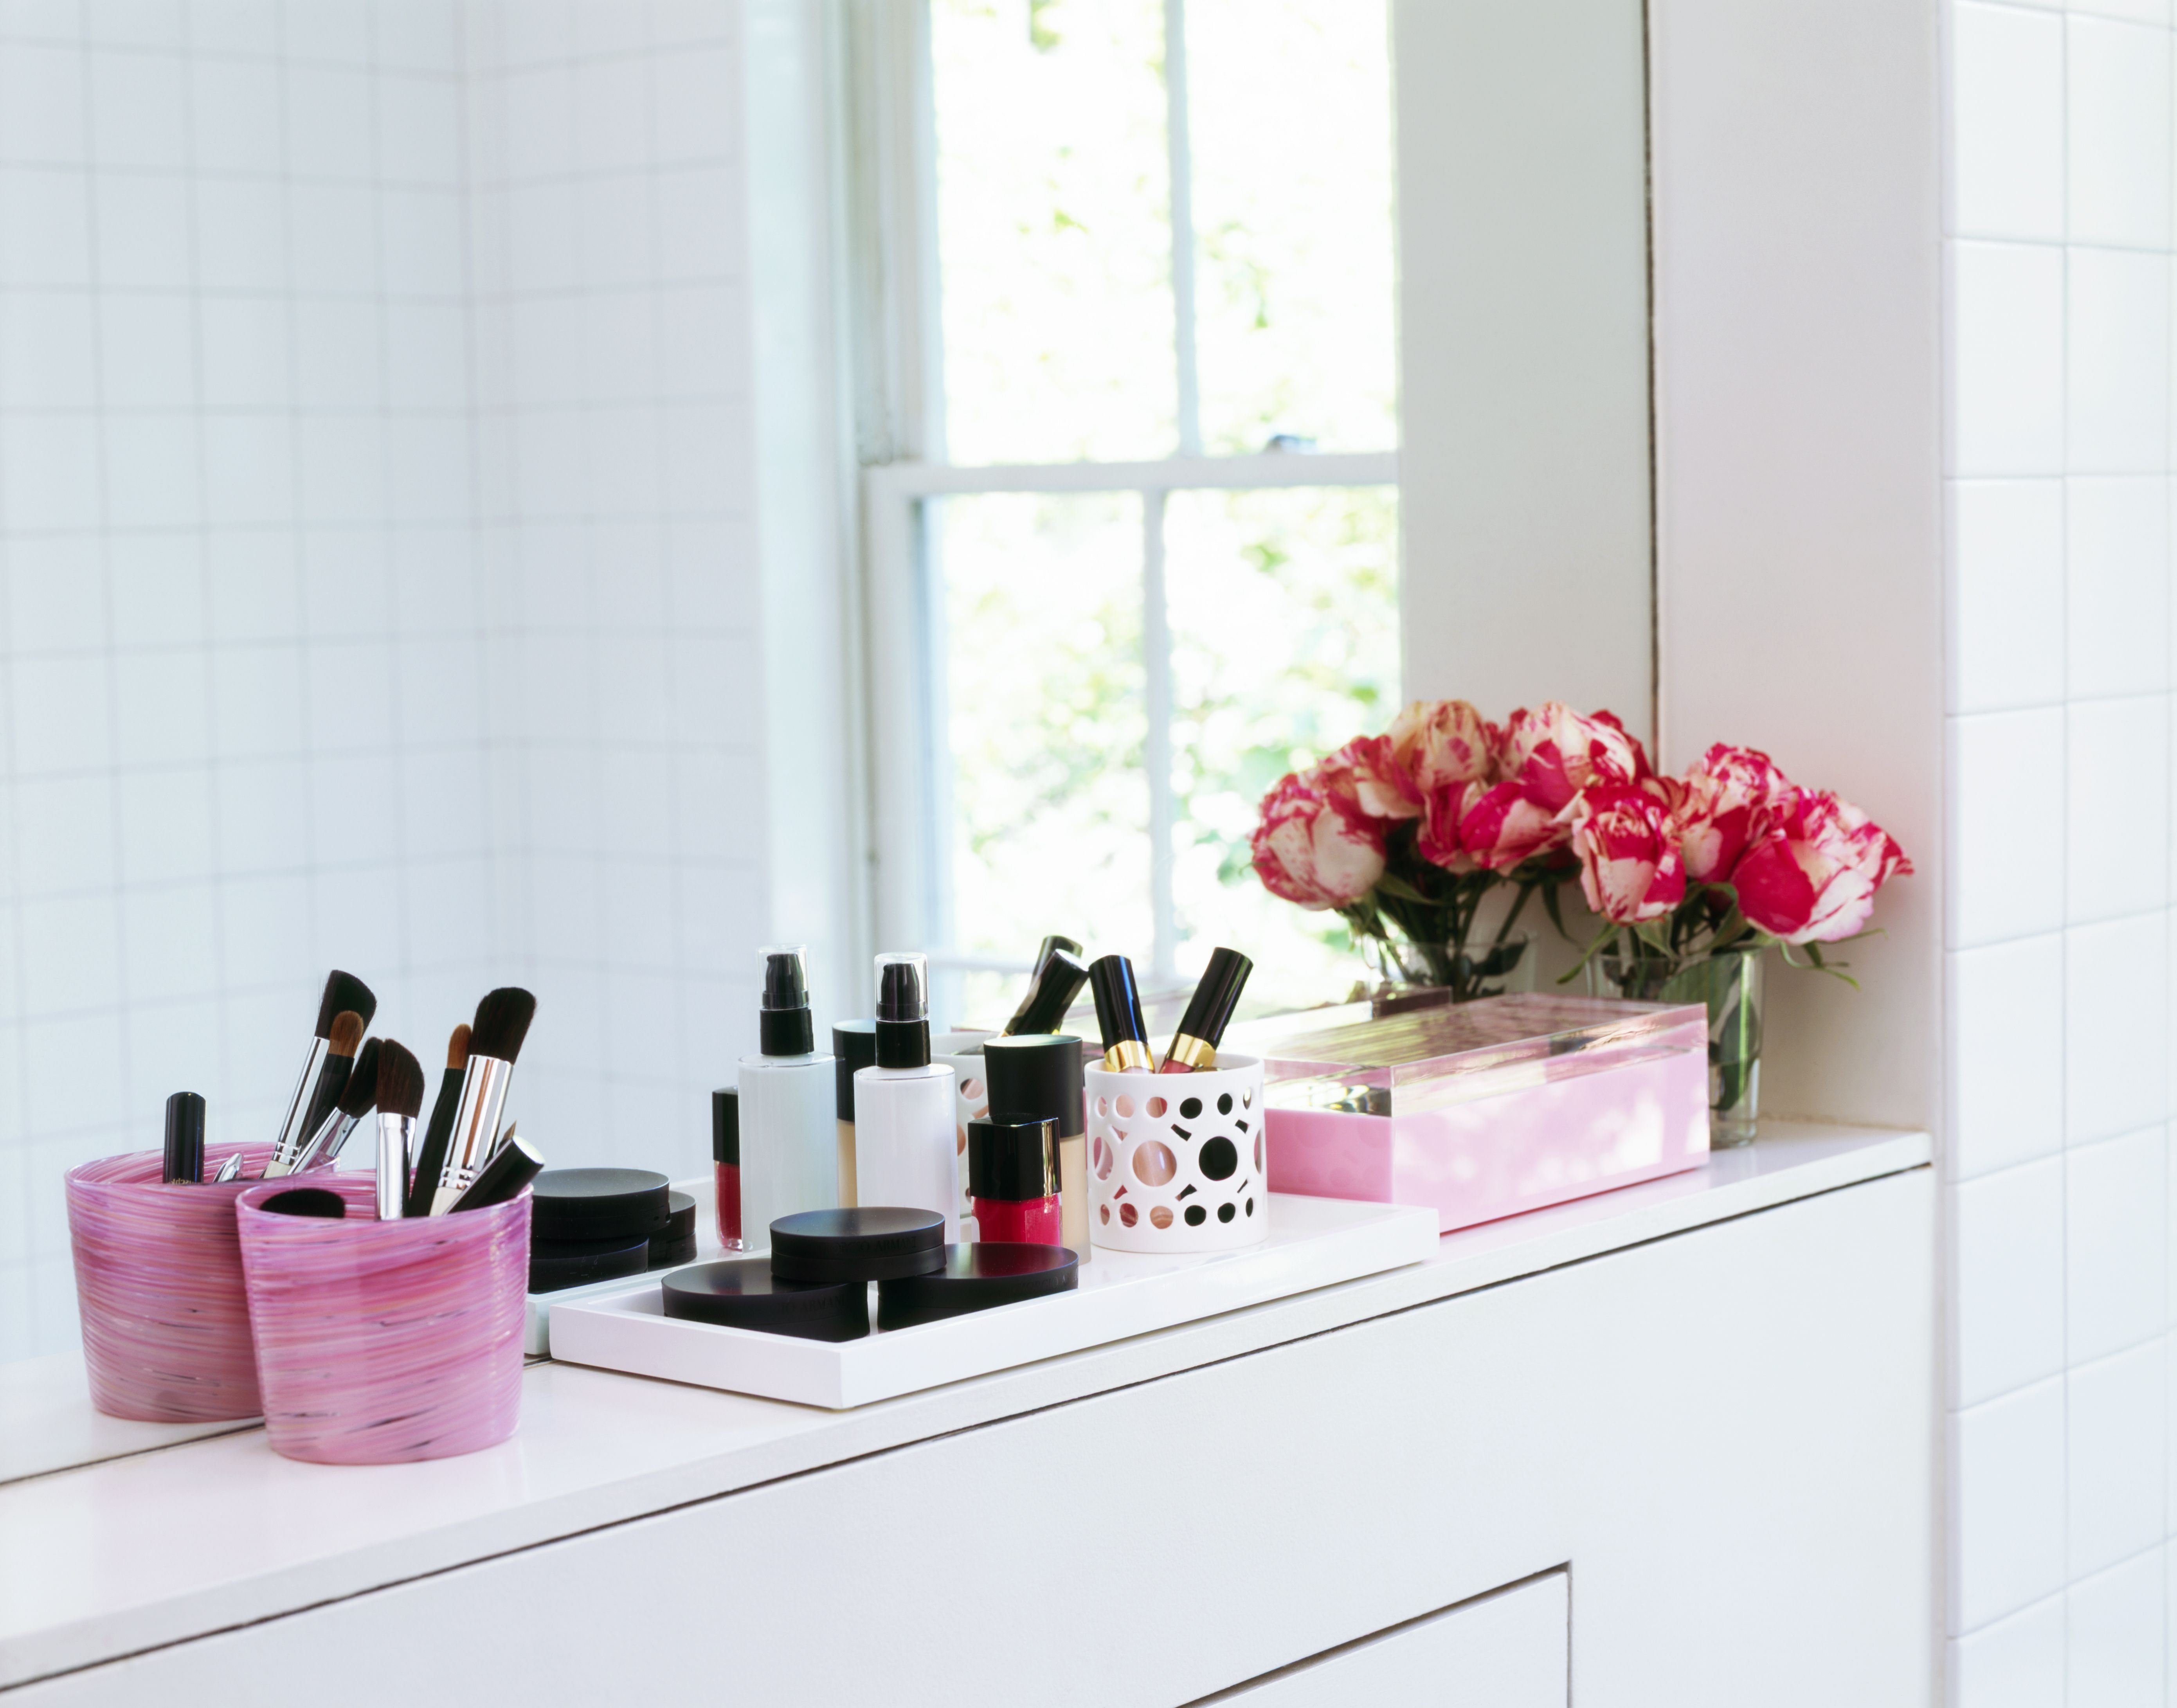 The 7 Best Makeup Organizers You Can Buy in 2018